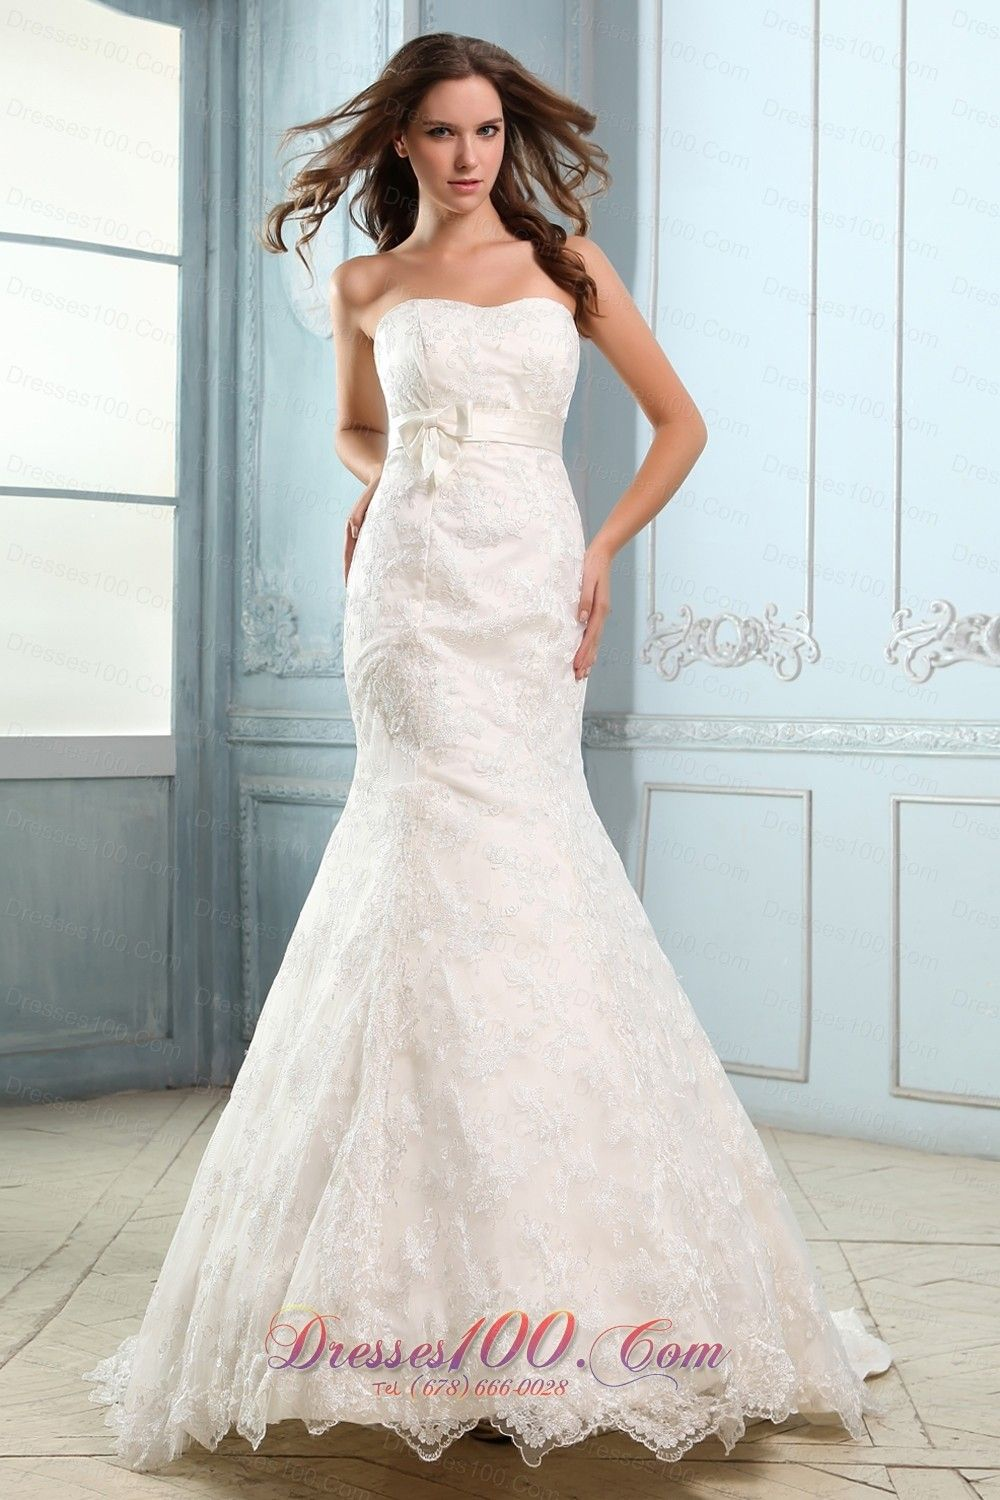 Look - Bridesmaid Affordable dresses nyc pictures video